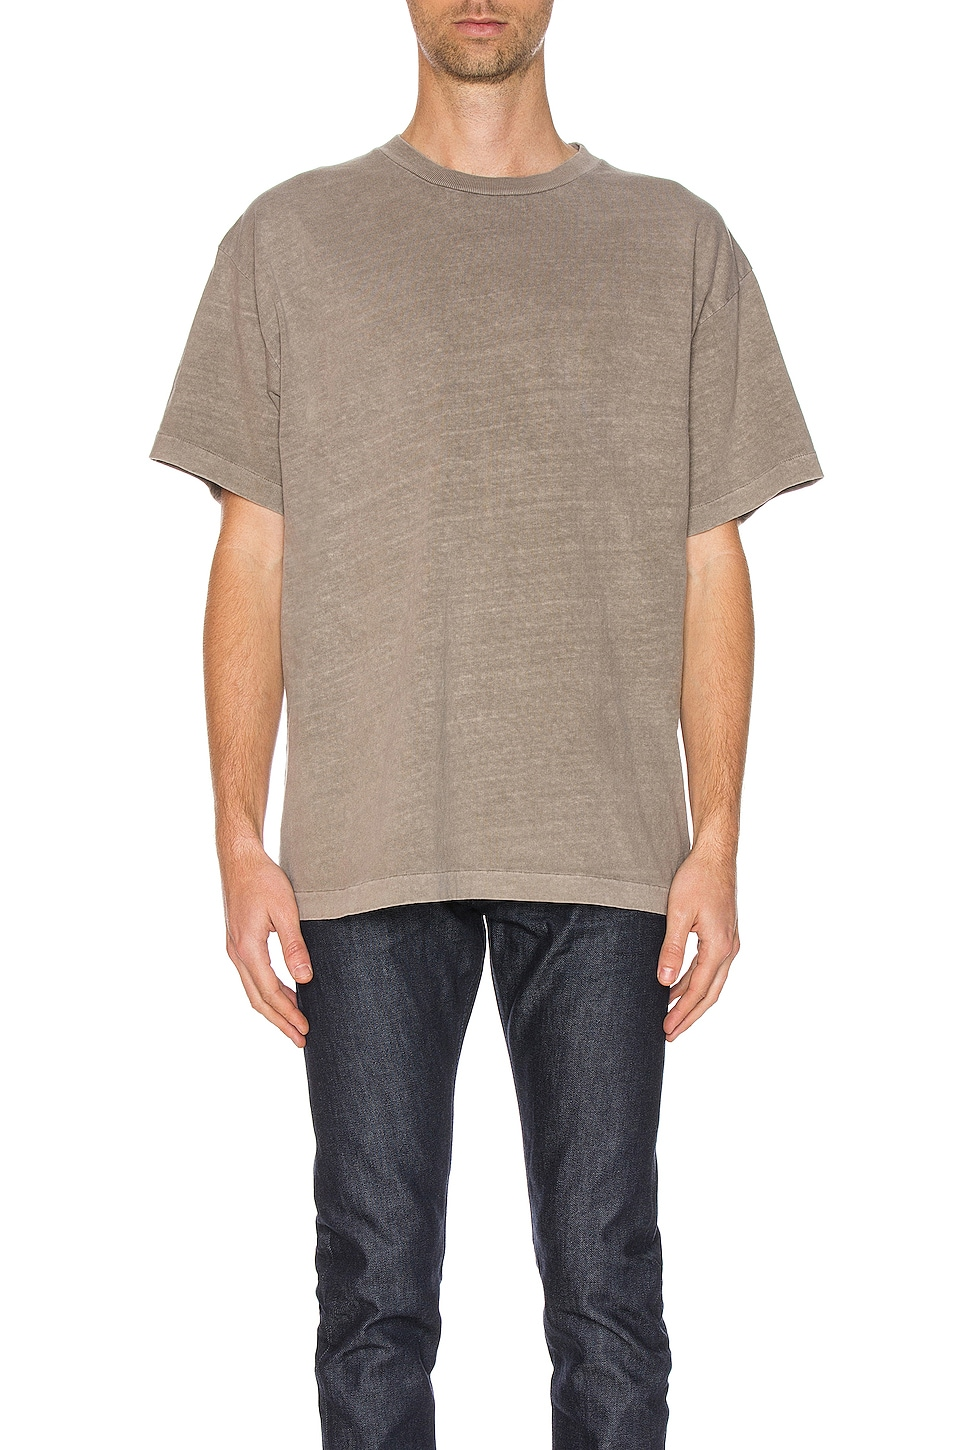 John Elliott Accessories University Tee